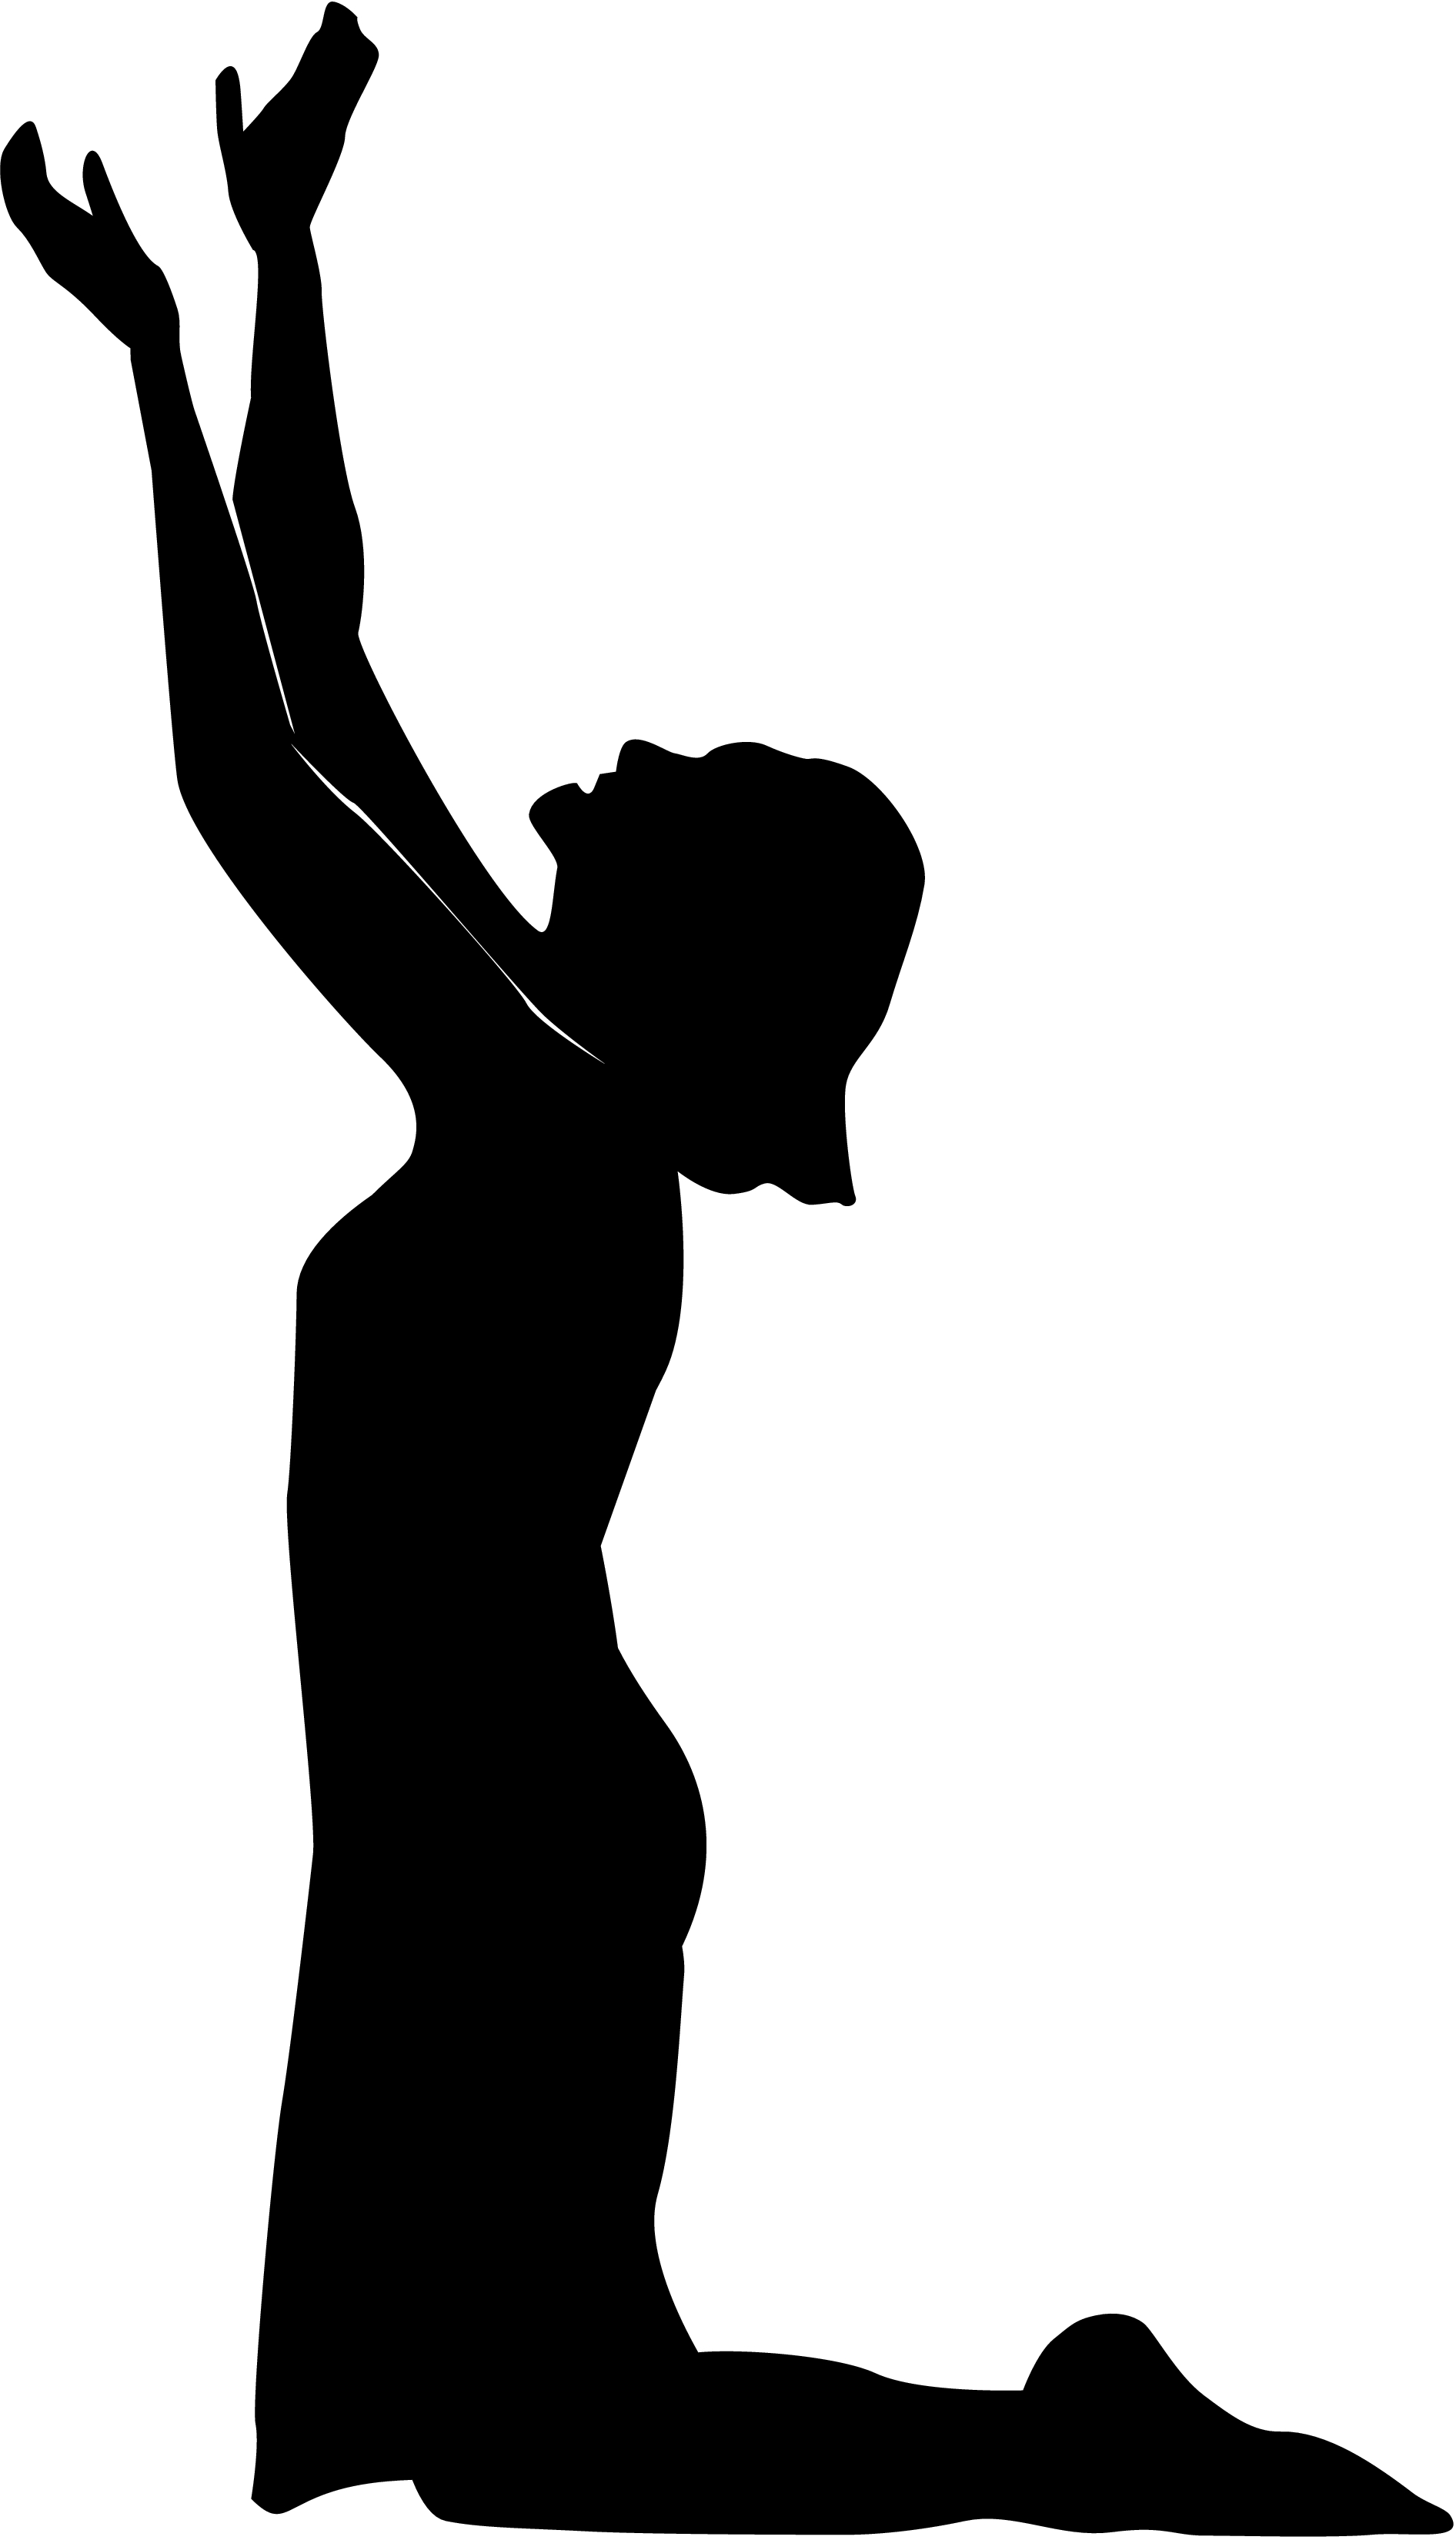 14 Praying Hands Silhouette Free Cliparts That You Can Download To You